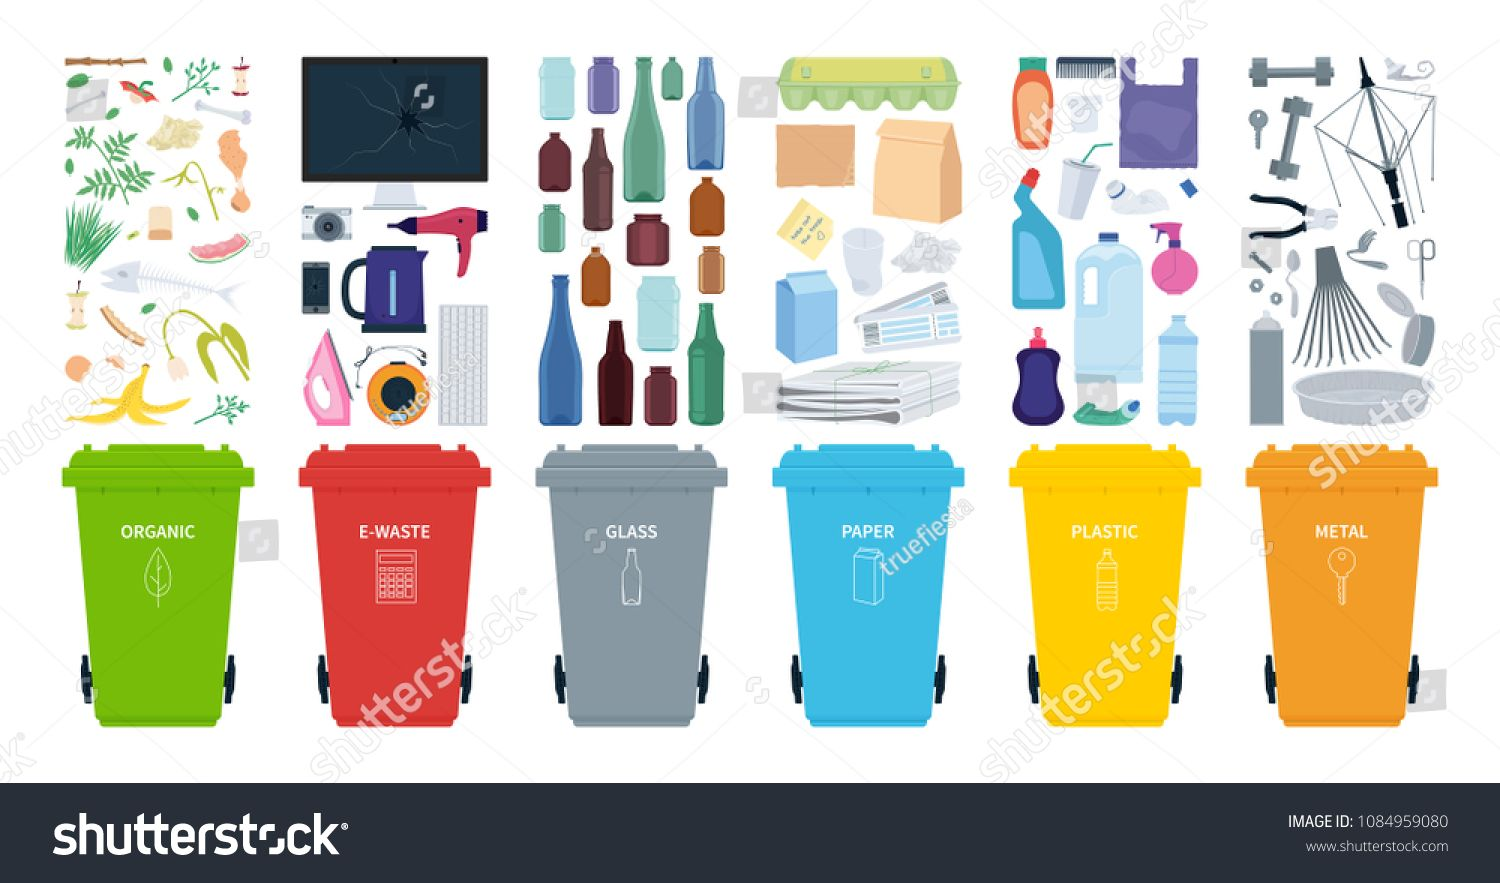 Rubbish Bins For Recycling Different Types Of Waste Sort Plastic Organic E Waste Metal Glass Paper Vector I Ad In 2020 Types Of Waste Rubbish Bin Recycling